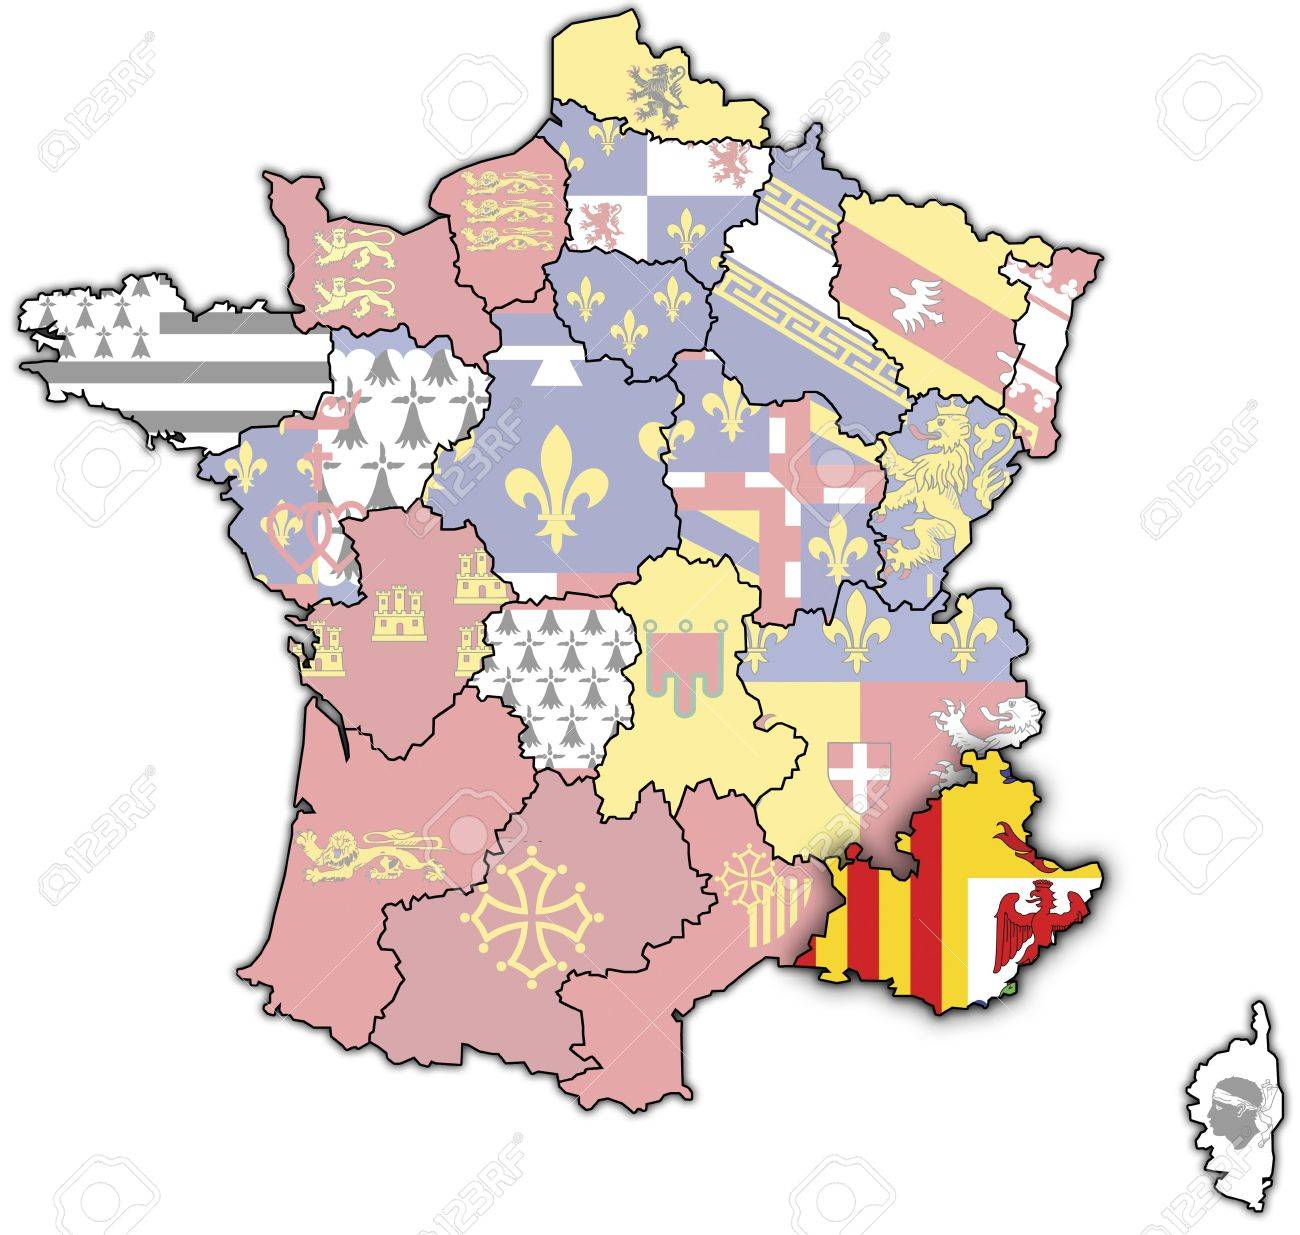 Provence Map Of France.Provence Alpes C Te D Azur On Old Map Of France With Flags Of